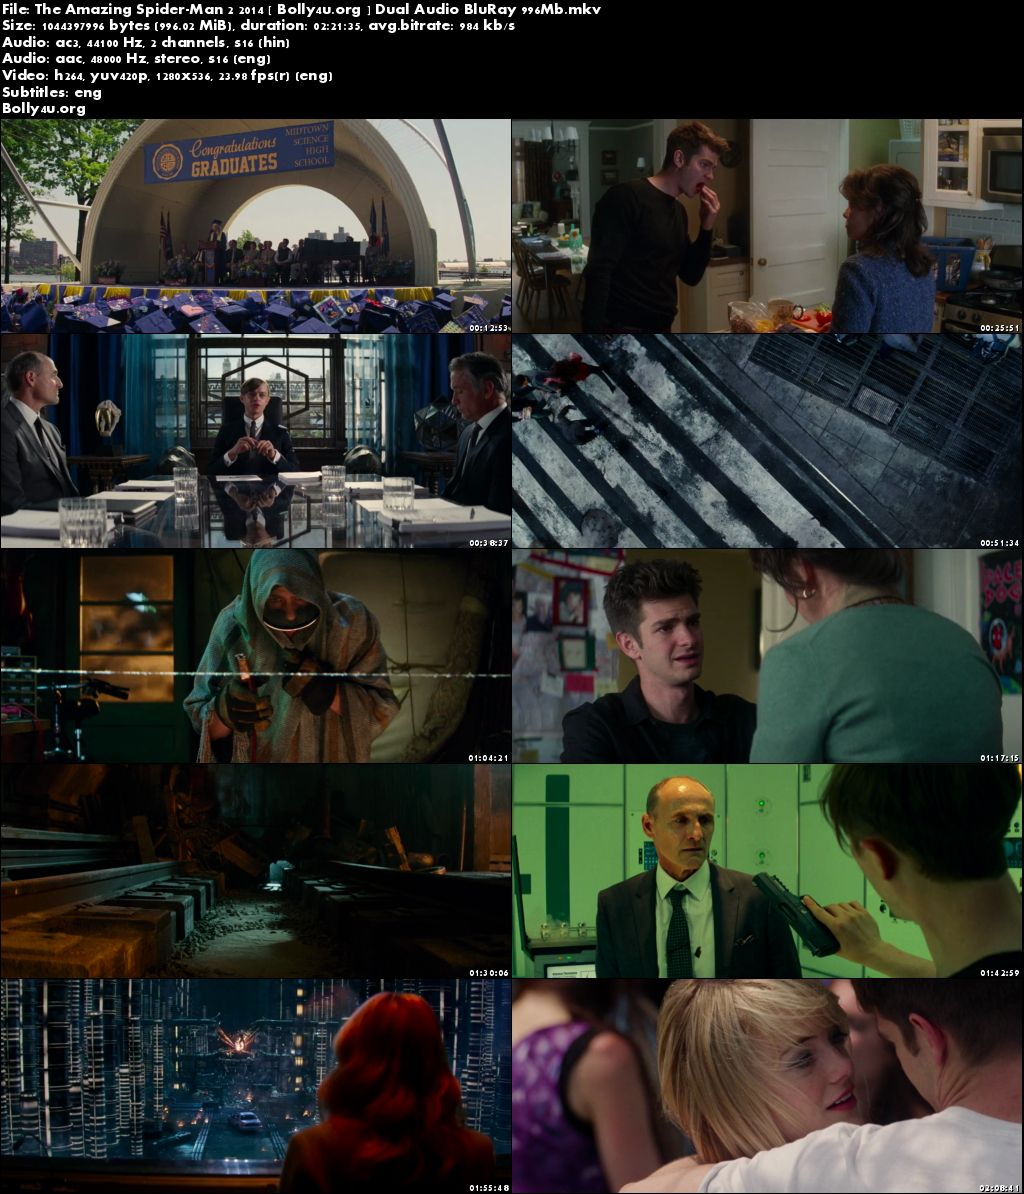 The Amazing Spider-Man 2 2014 BRRip 450MB Hindi Dual Audio 480p Download